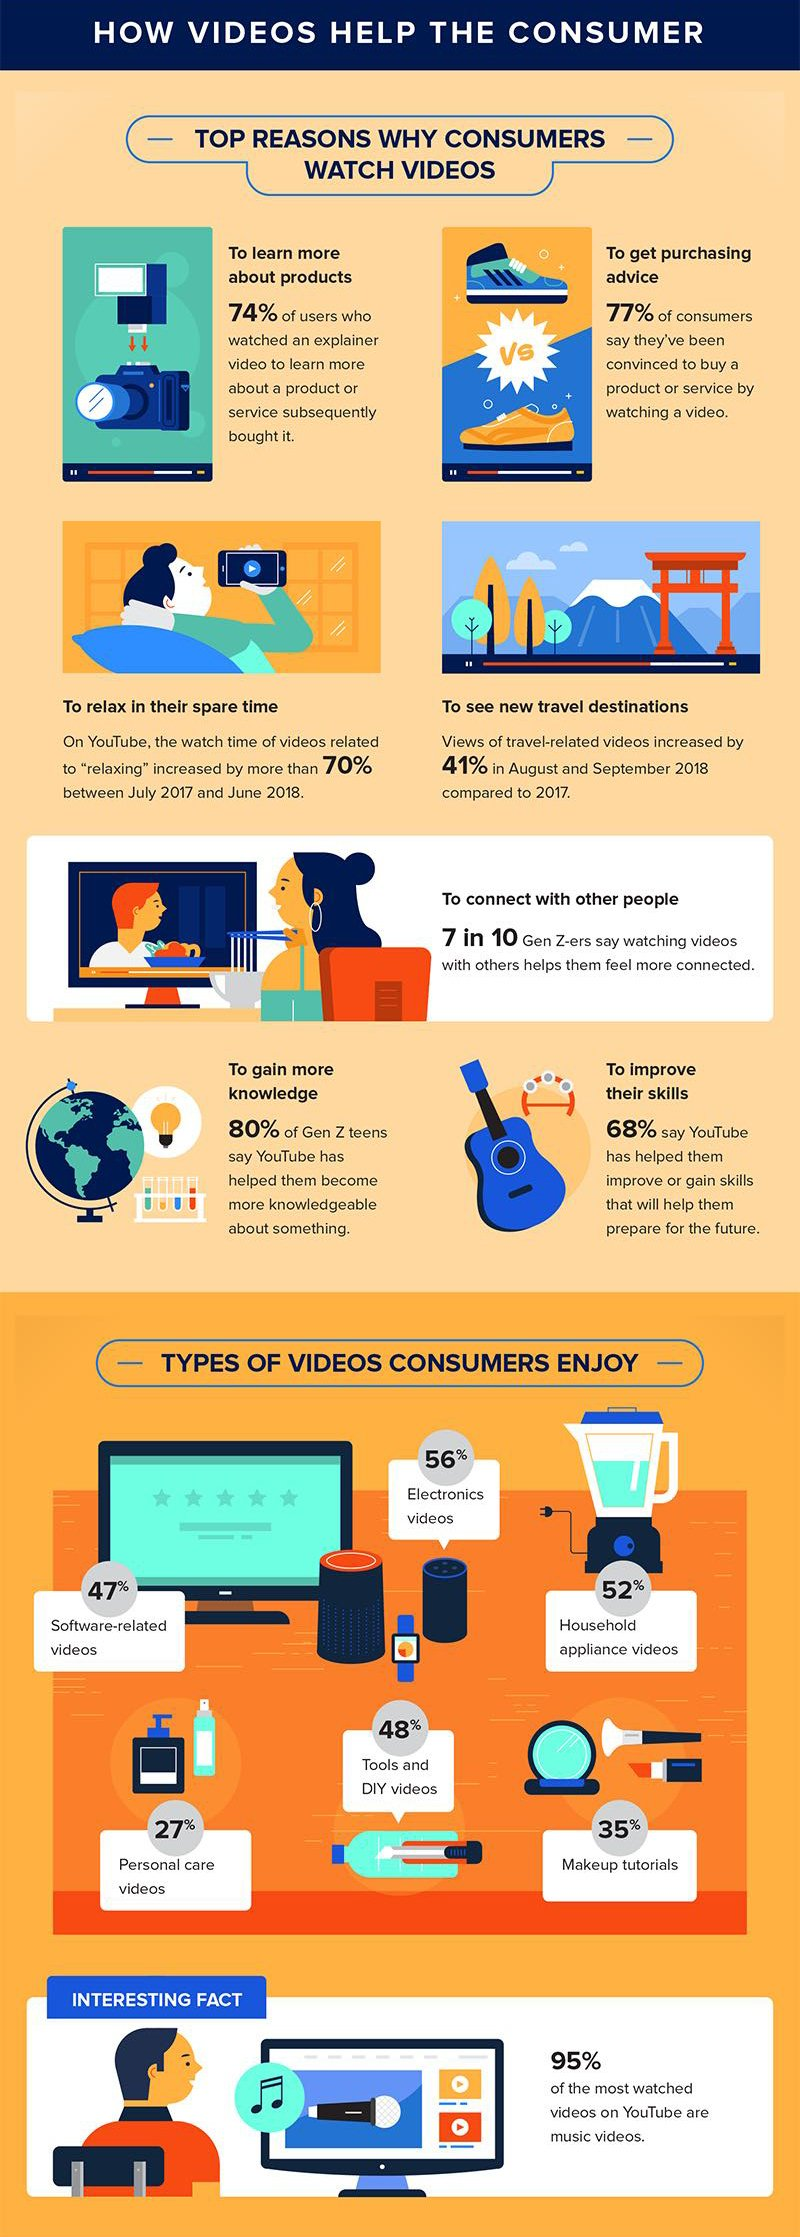 Video helps the consumer